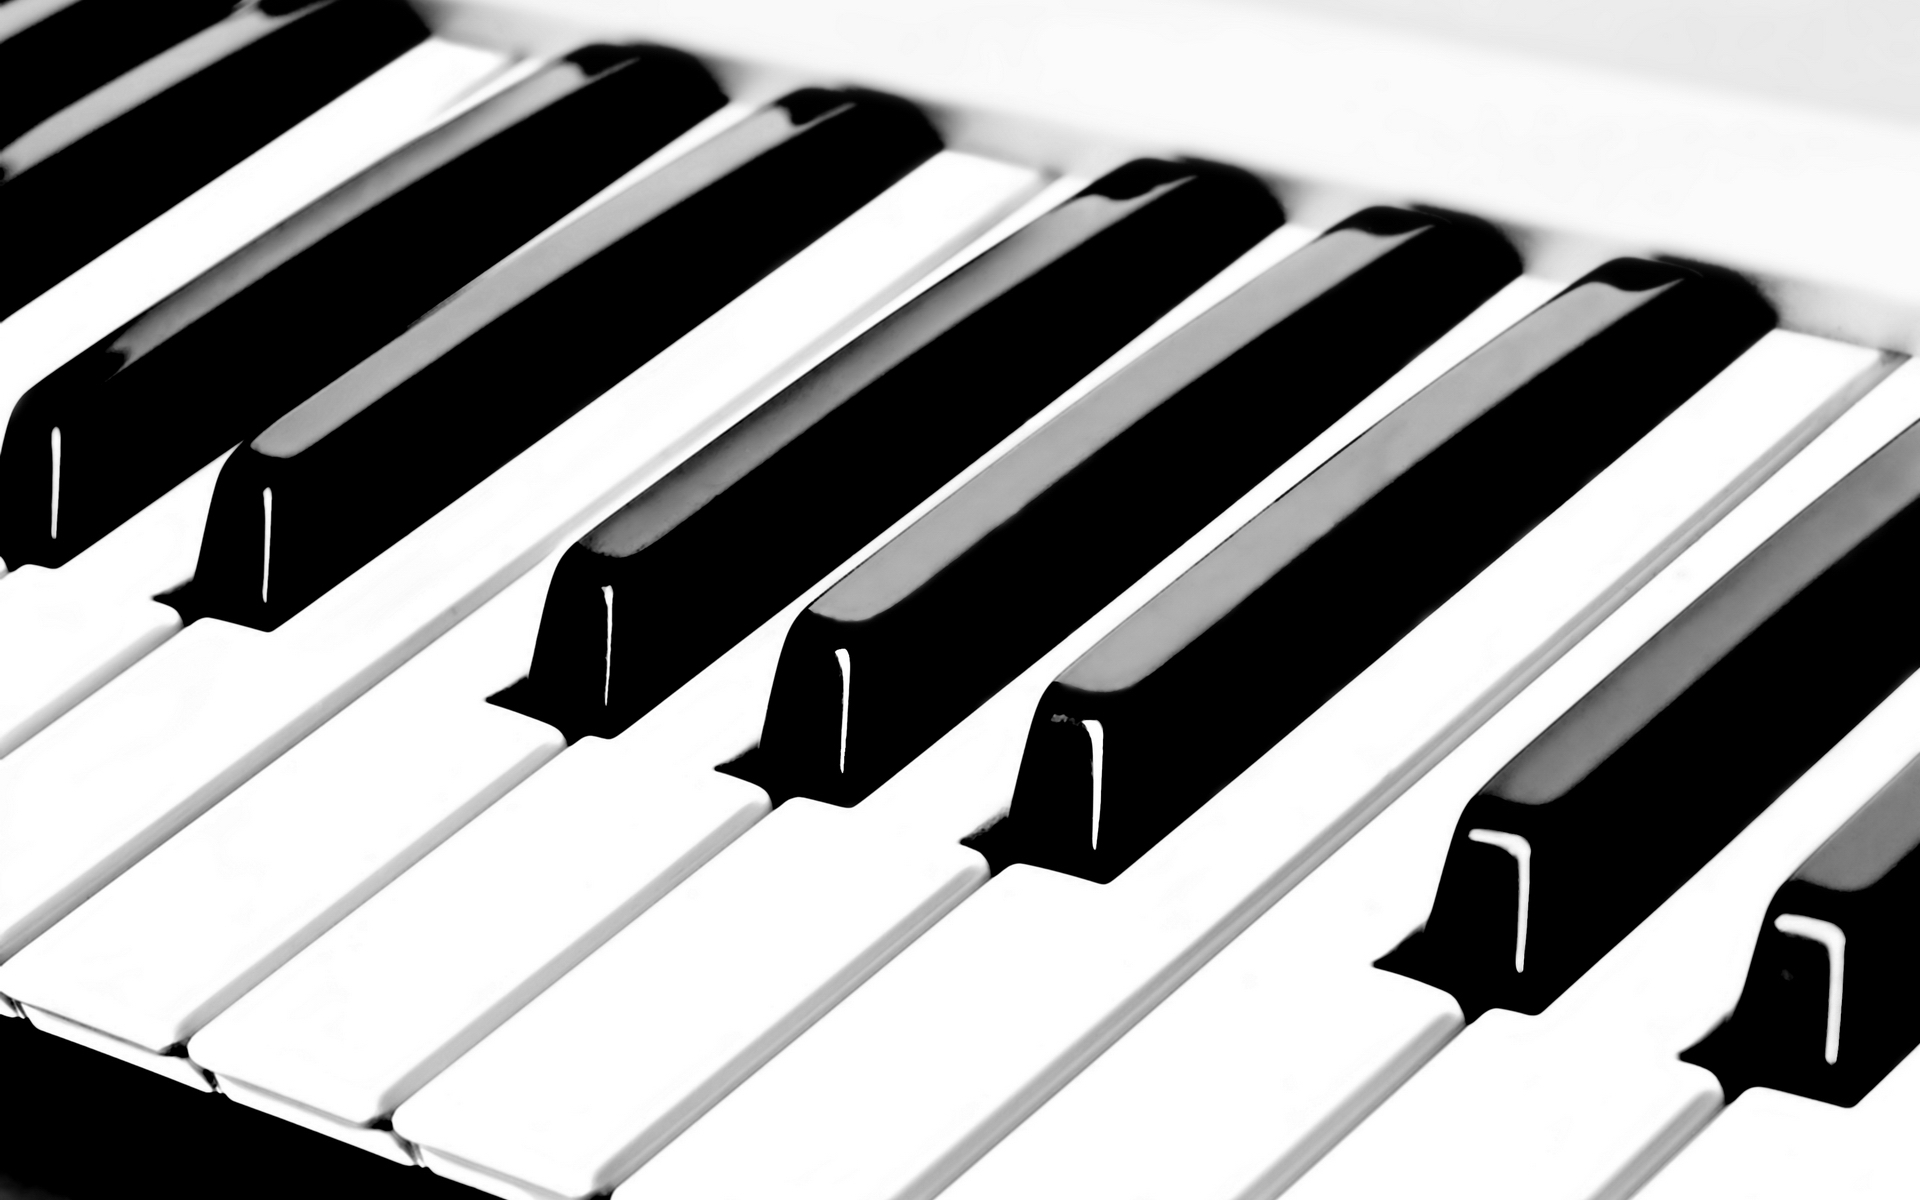 42422 download wallpaper Music, Objects screensavers and pictures for free